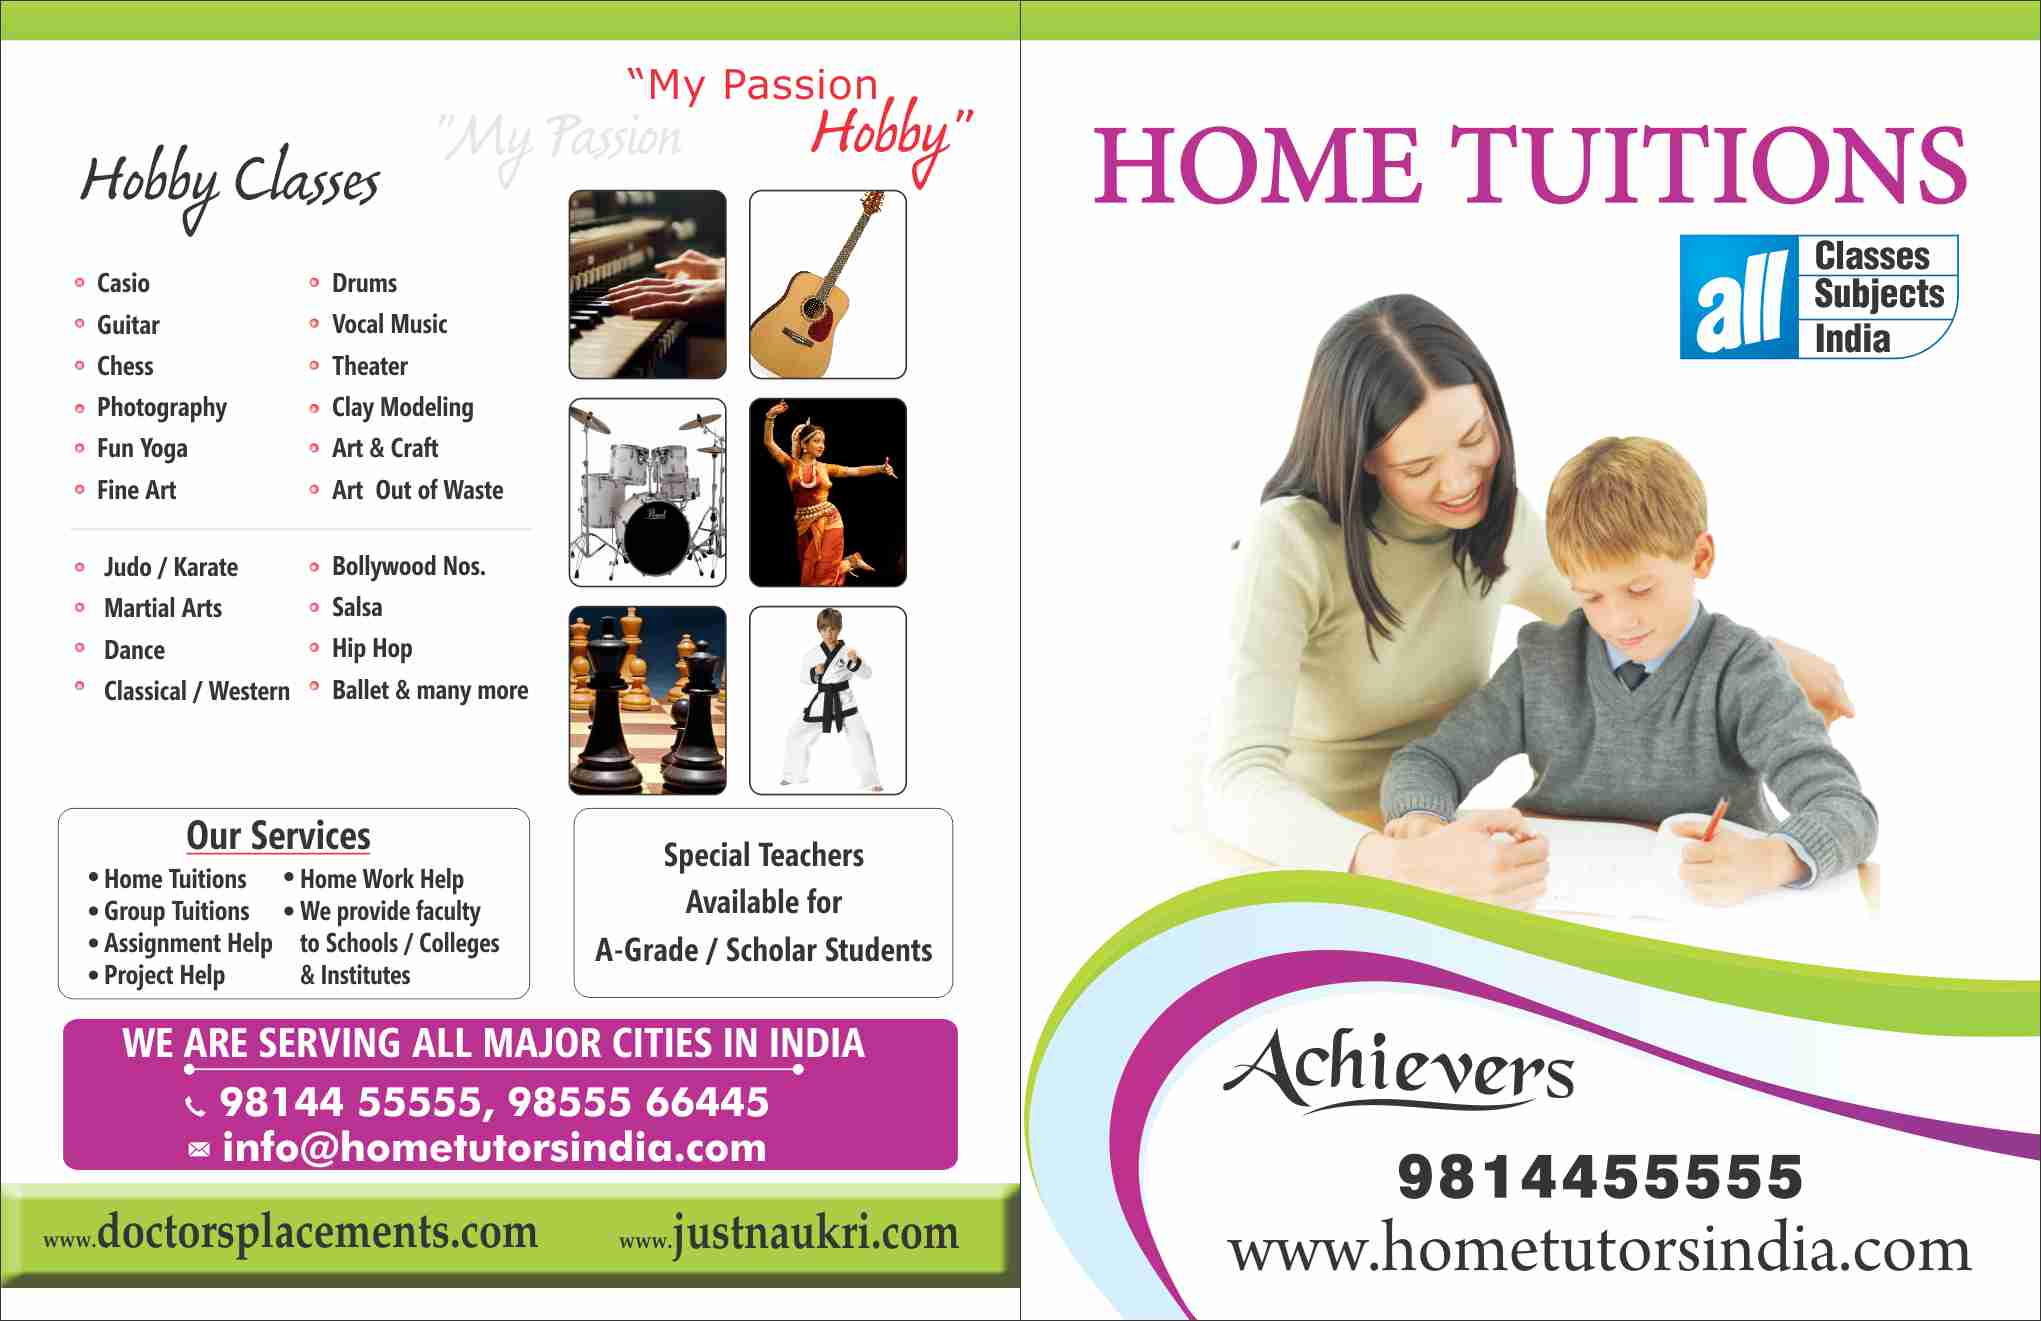 Home Tutors India - Brochure - Click to view enlarge